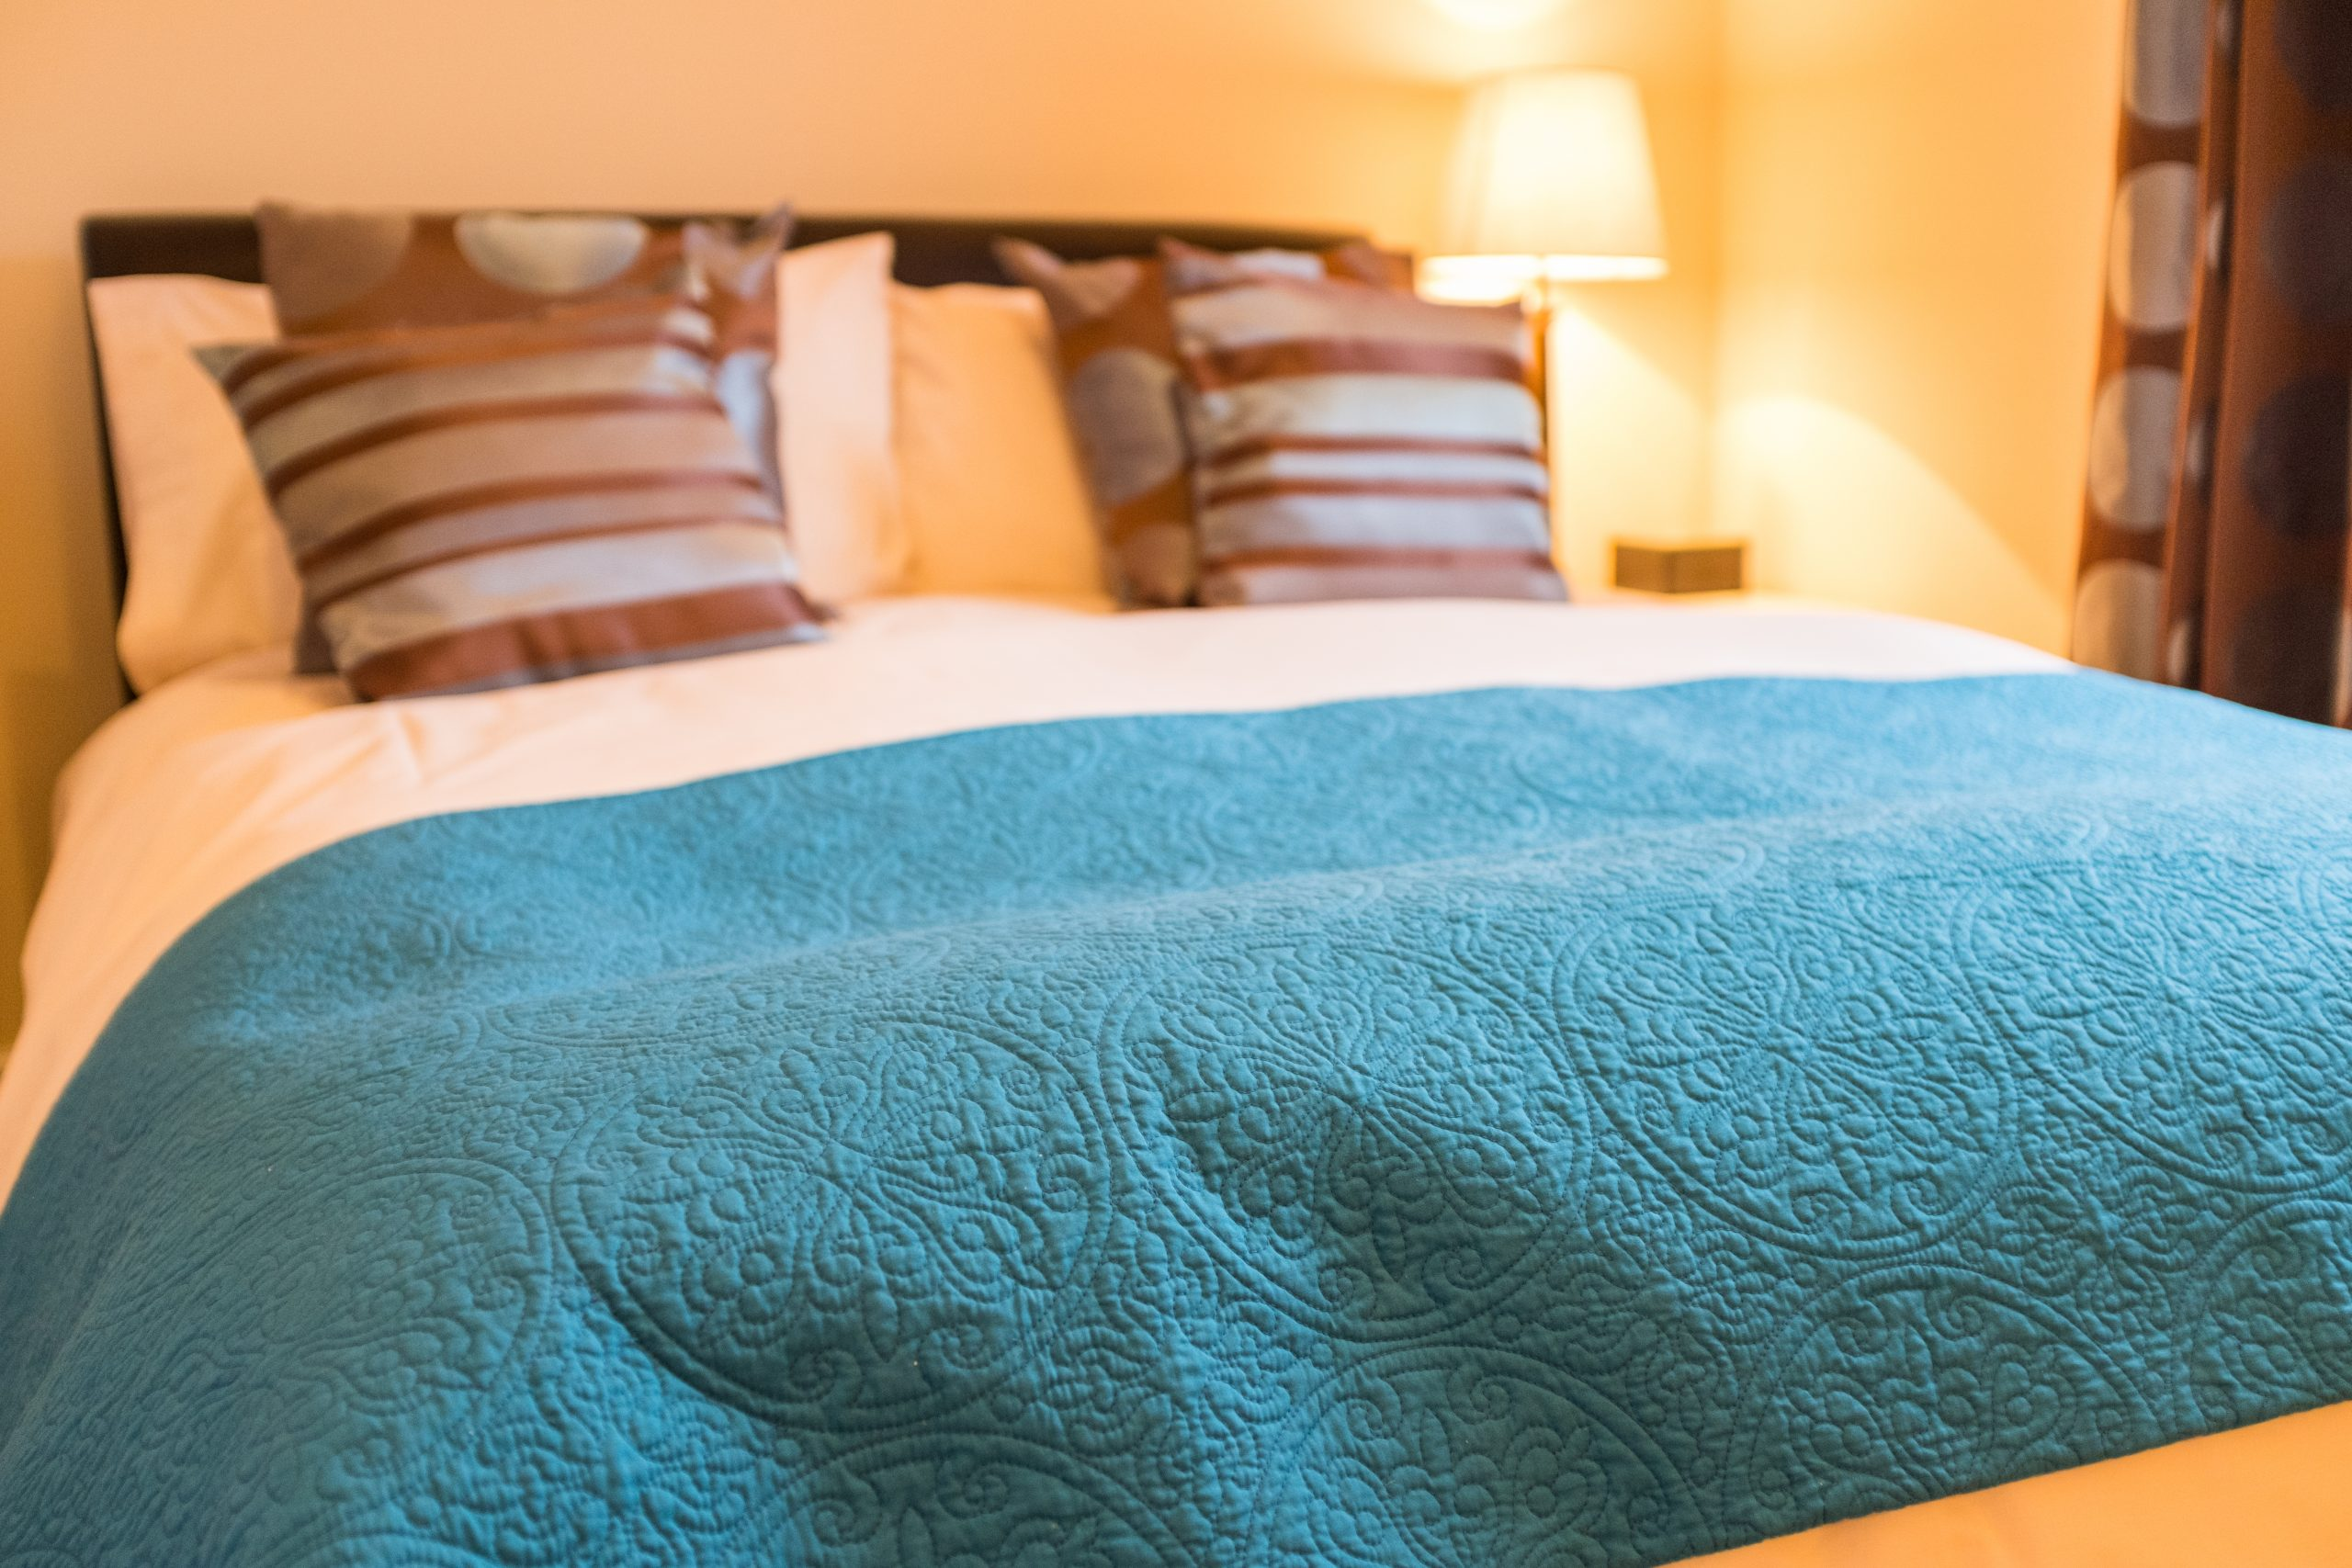 A close up shot of the double bed